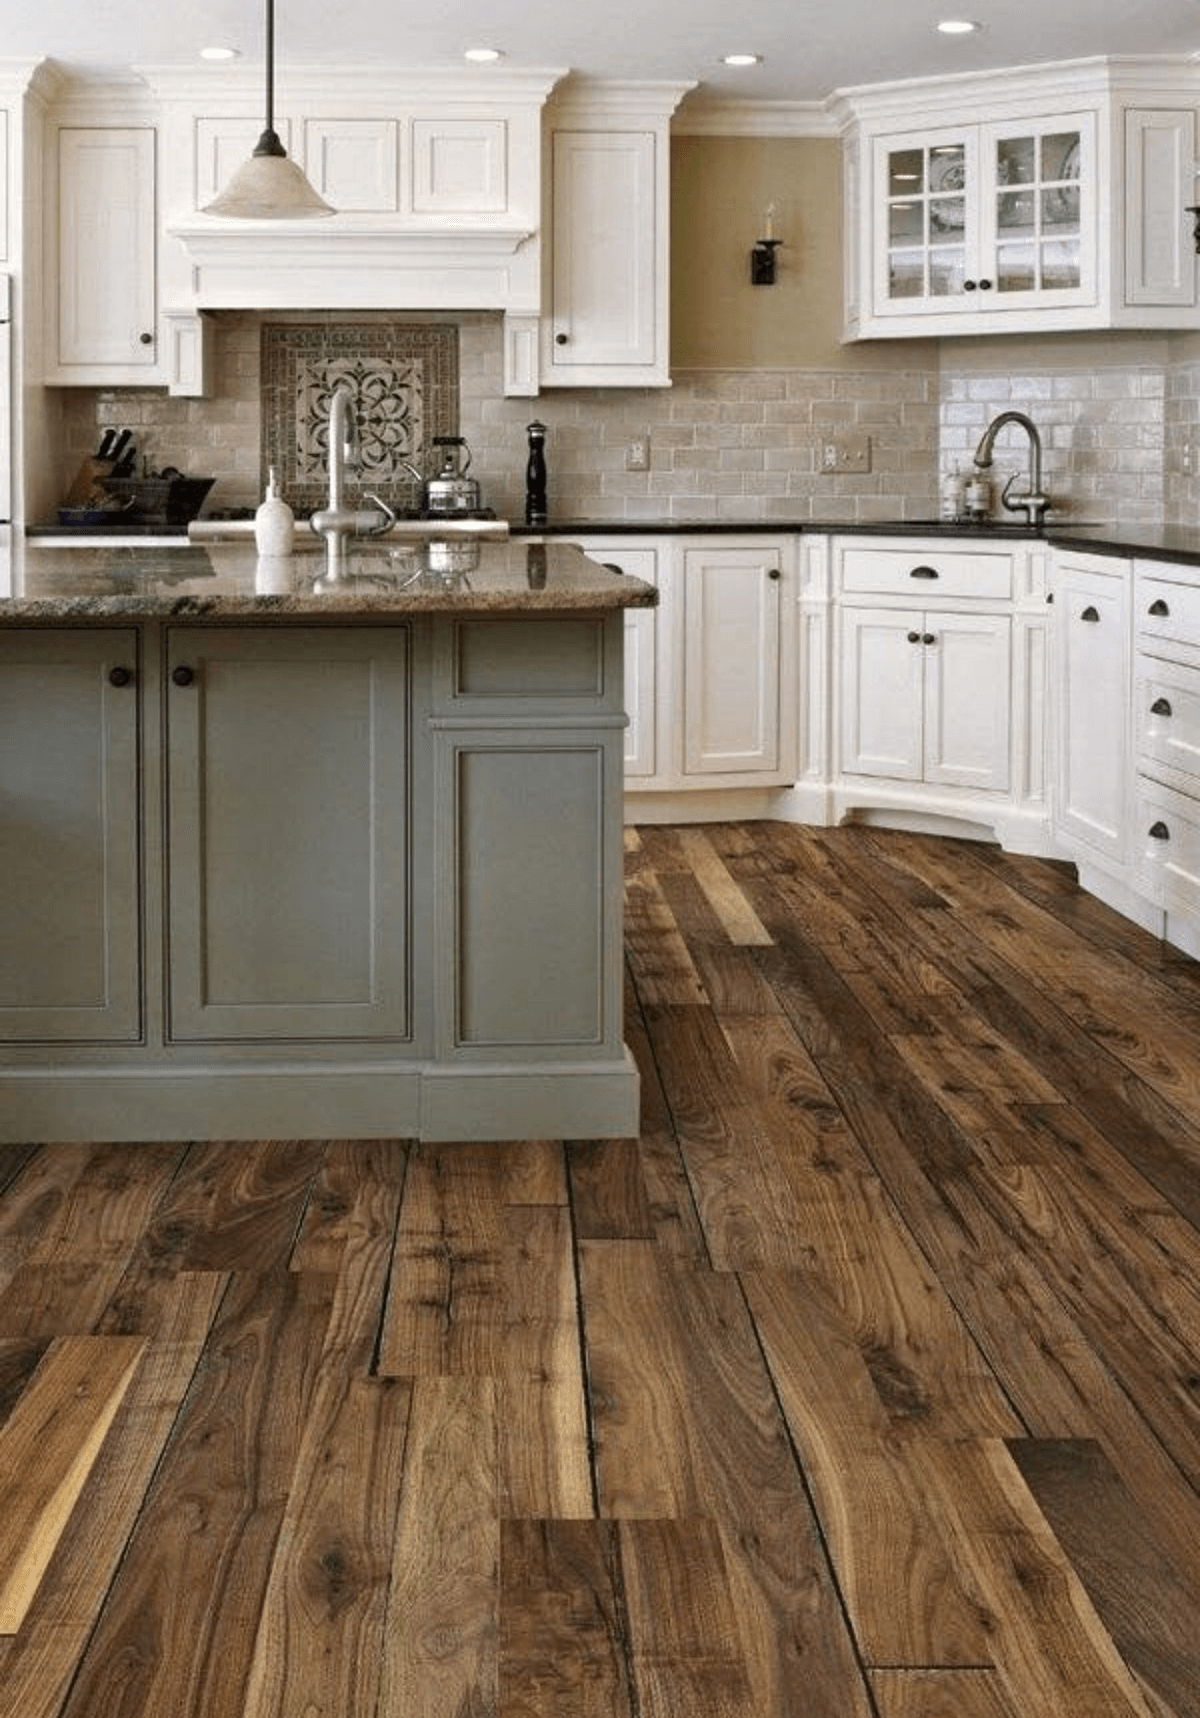 Flooring of parquet boards for kitchen contry stile for Country kitchen floor ideas